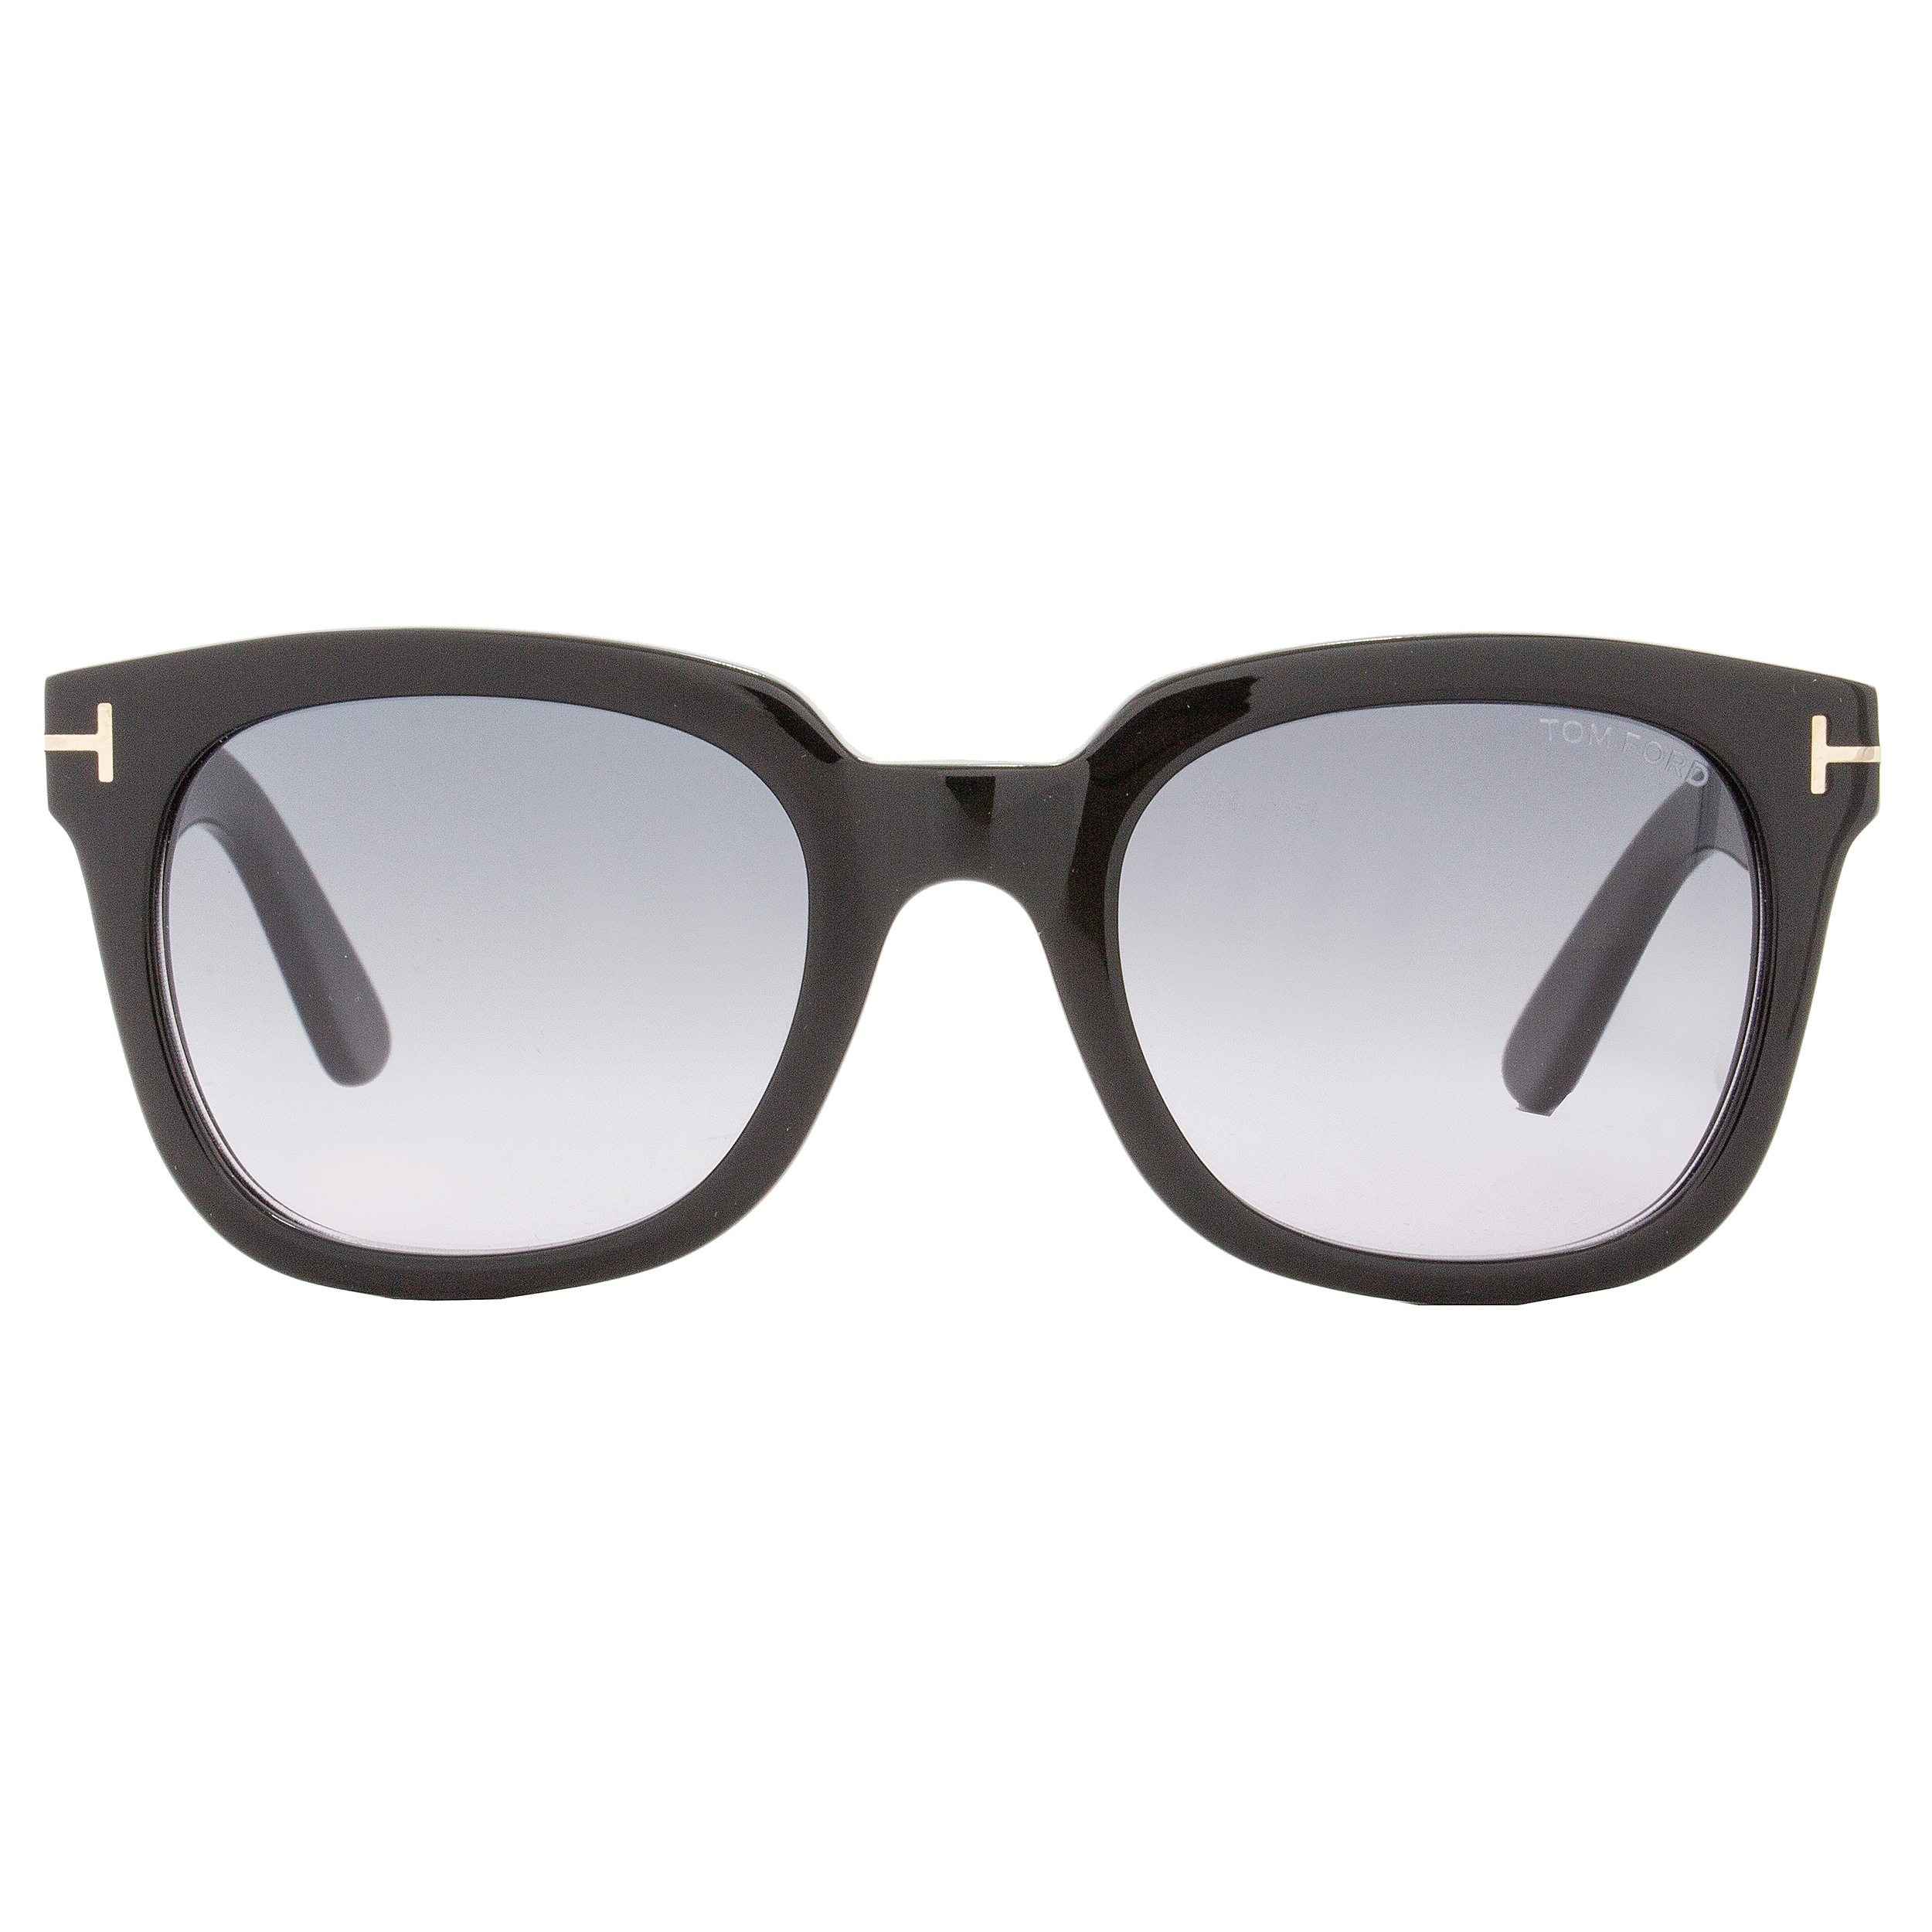 9923ef86f4cc Shop Tom Ford TF198 Campbell 01B Women s Shiny Black Gold Gray Gradient  Lens Sunglasses - Free Shipping Today - Overstock - 18153208